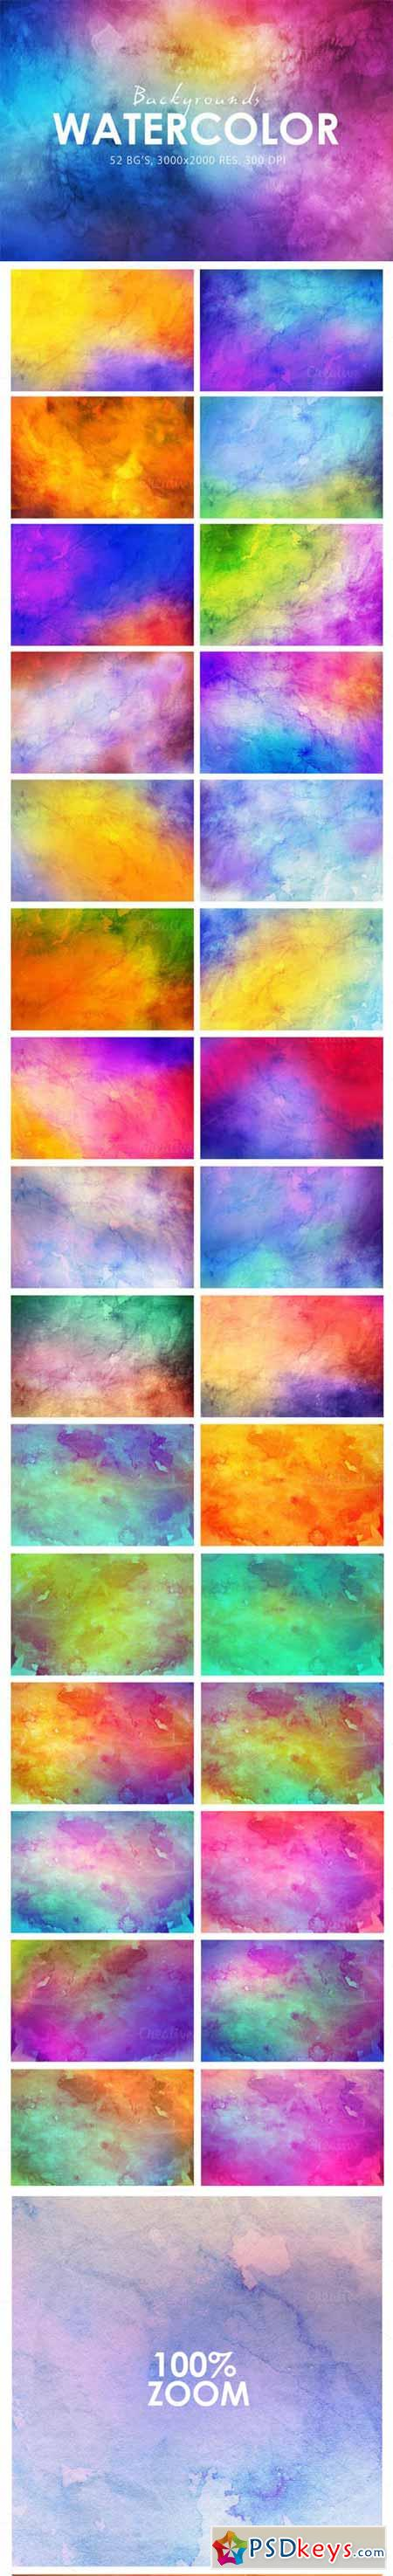 52 Watercolor Backgrounds 324748